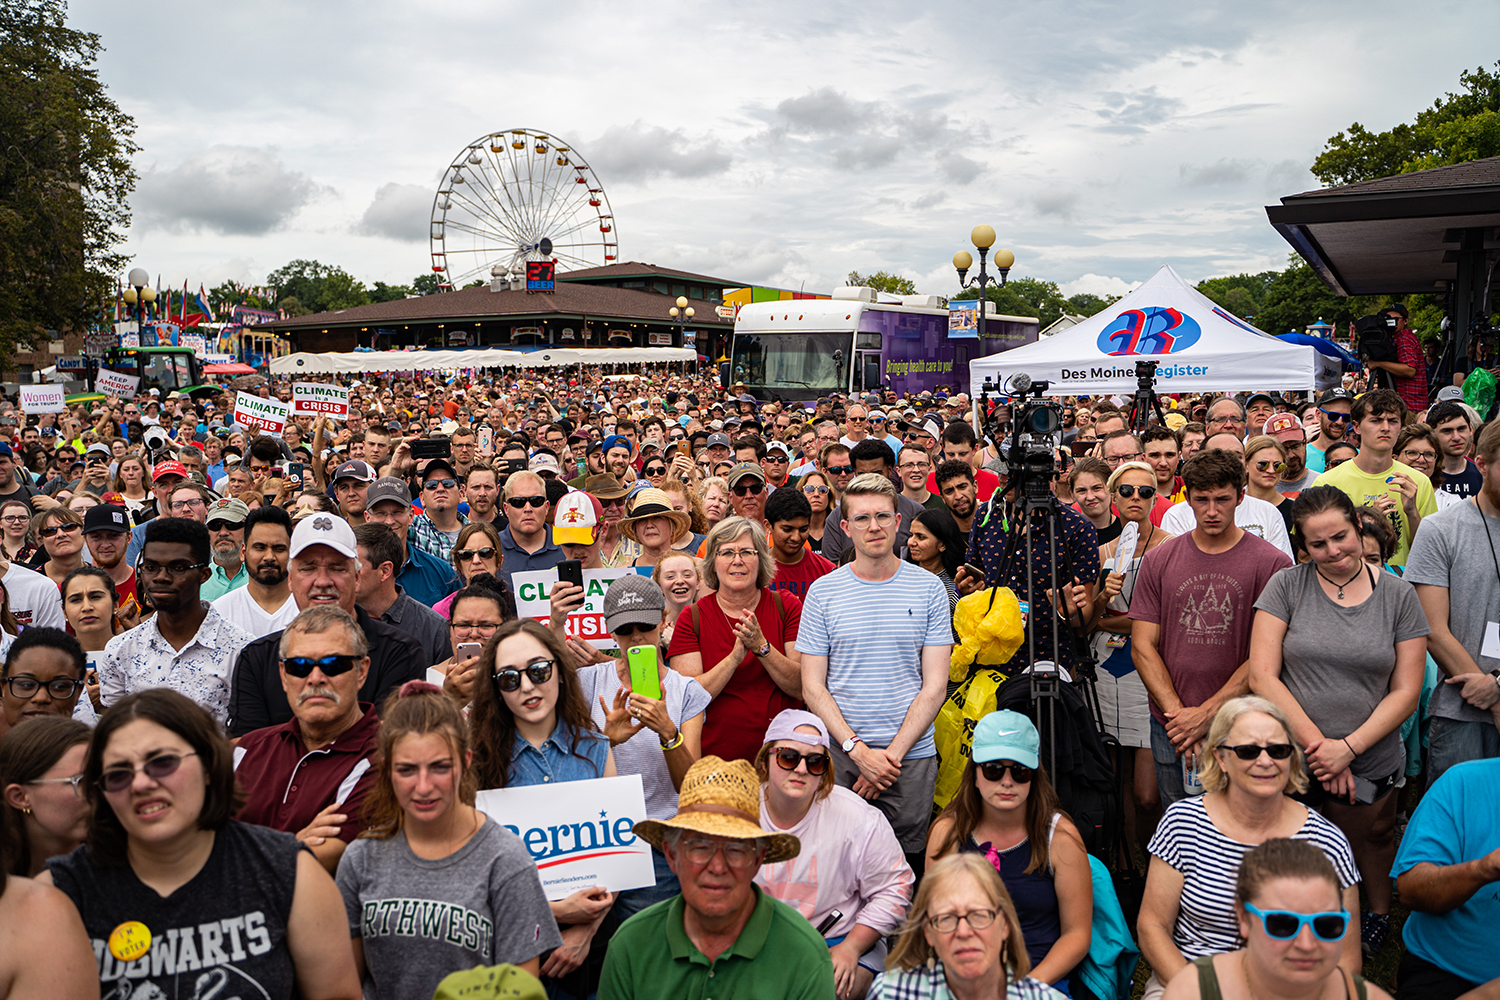 A crowd gathers to watch Sen. Bernie Sanders speak during the Iowa State Fair in Des Moines, IA on Sunday, August 11, 2019.